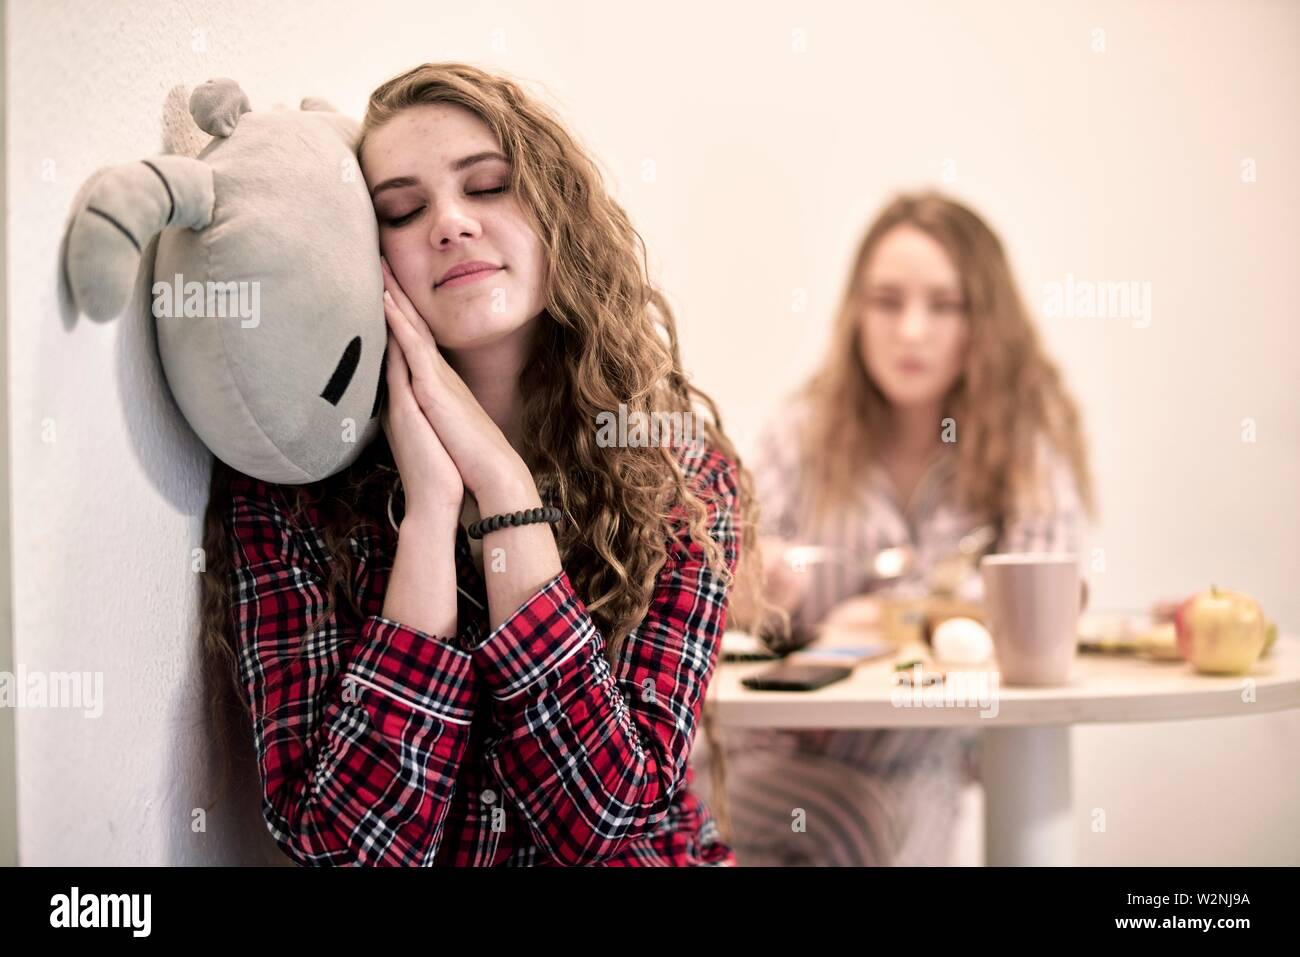 tired woman cuddling with plushie at breakfast table in morning, starting day in shared student flat - Stock Image